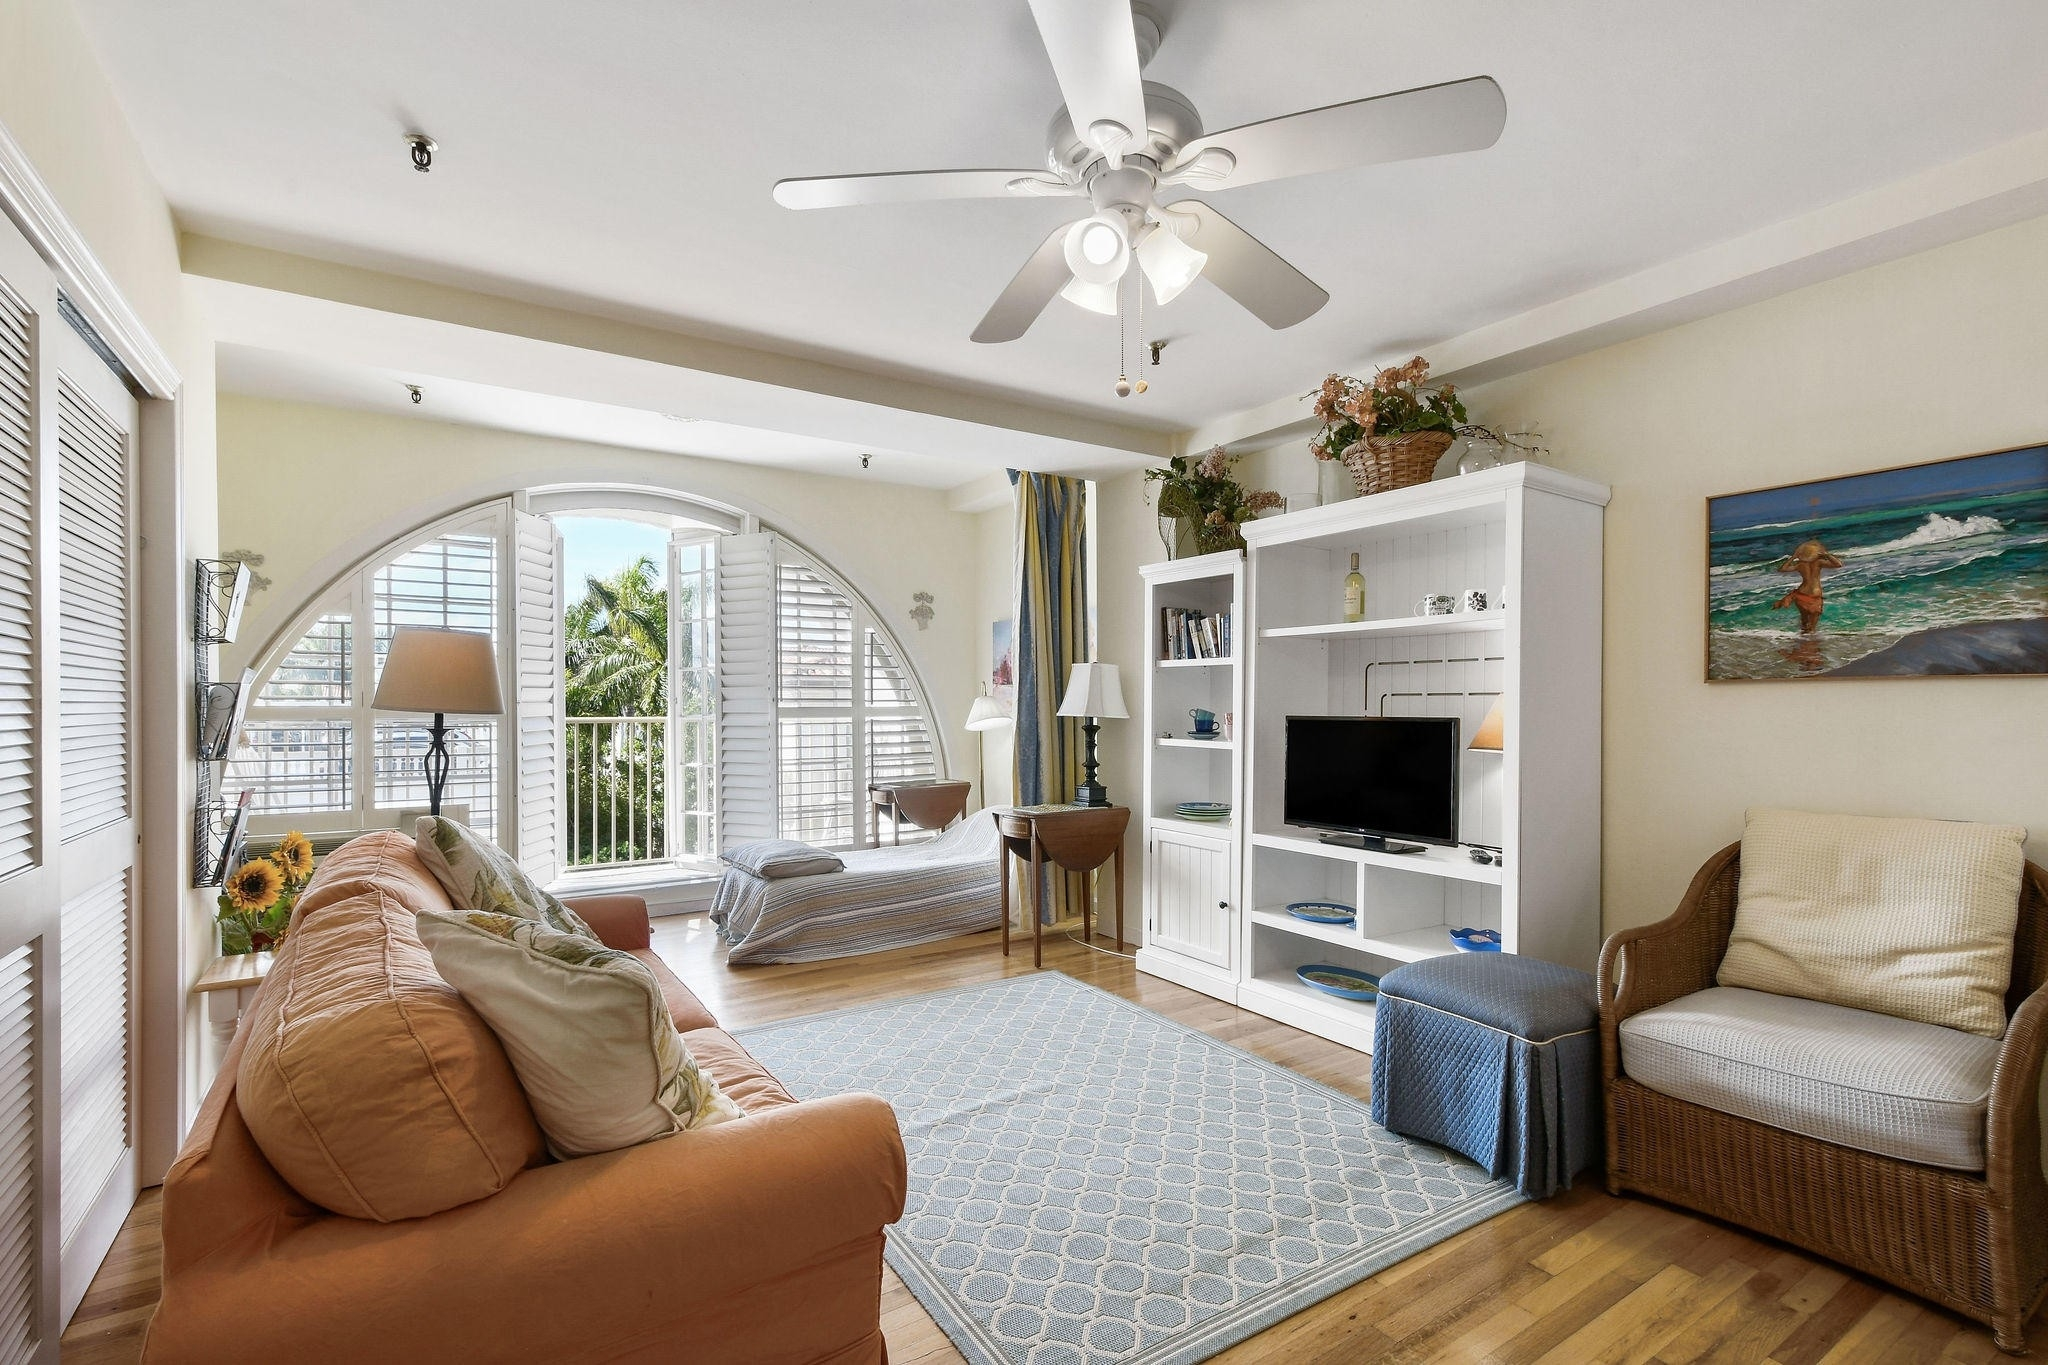 Property в 235 Sunrise Avenue, 2027 Palm Beach, FL 33480